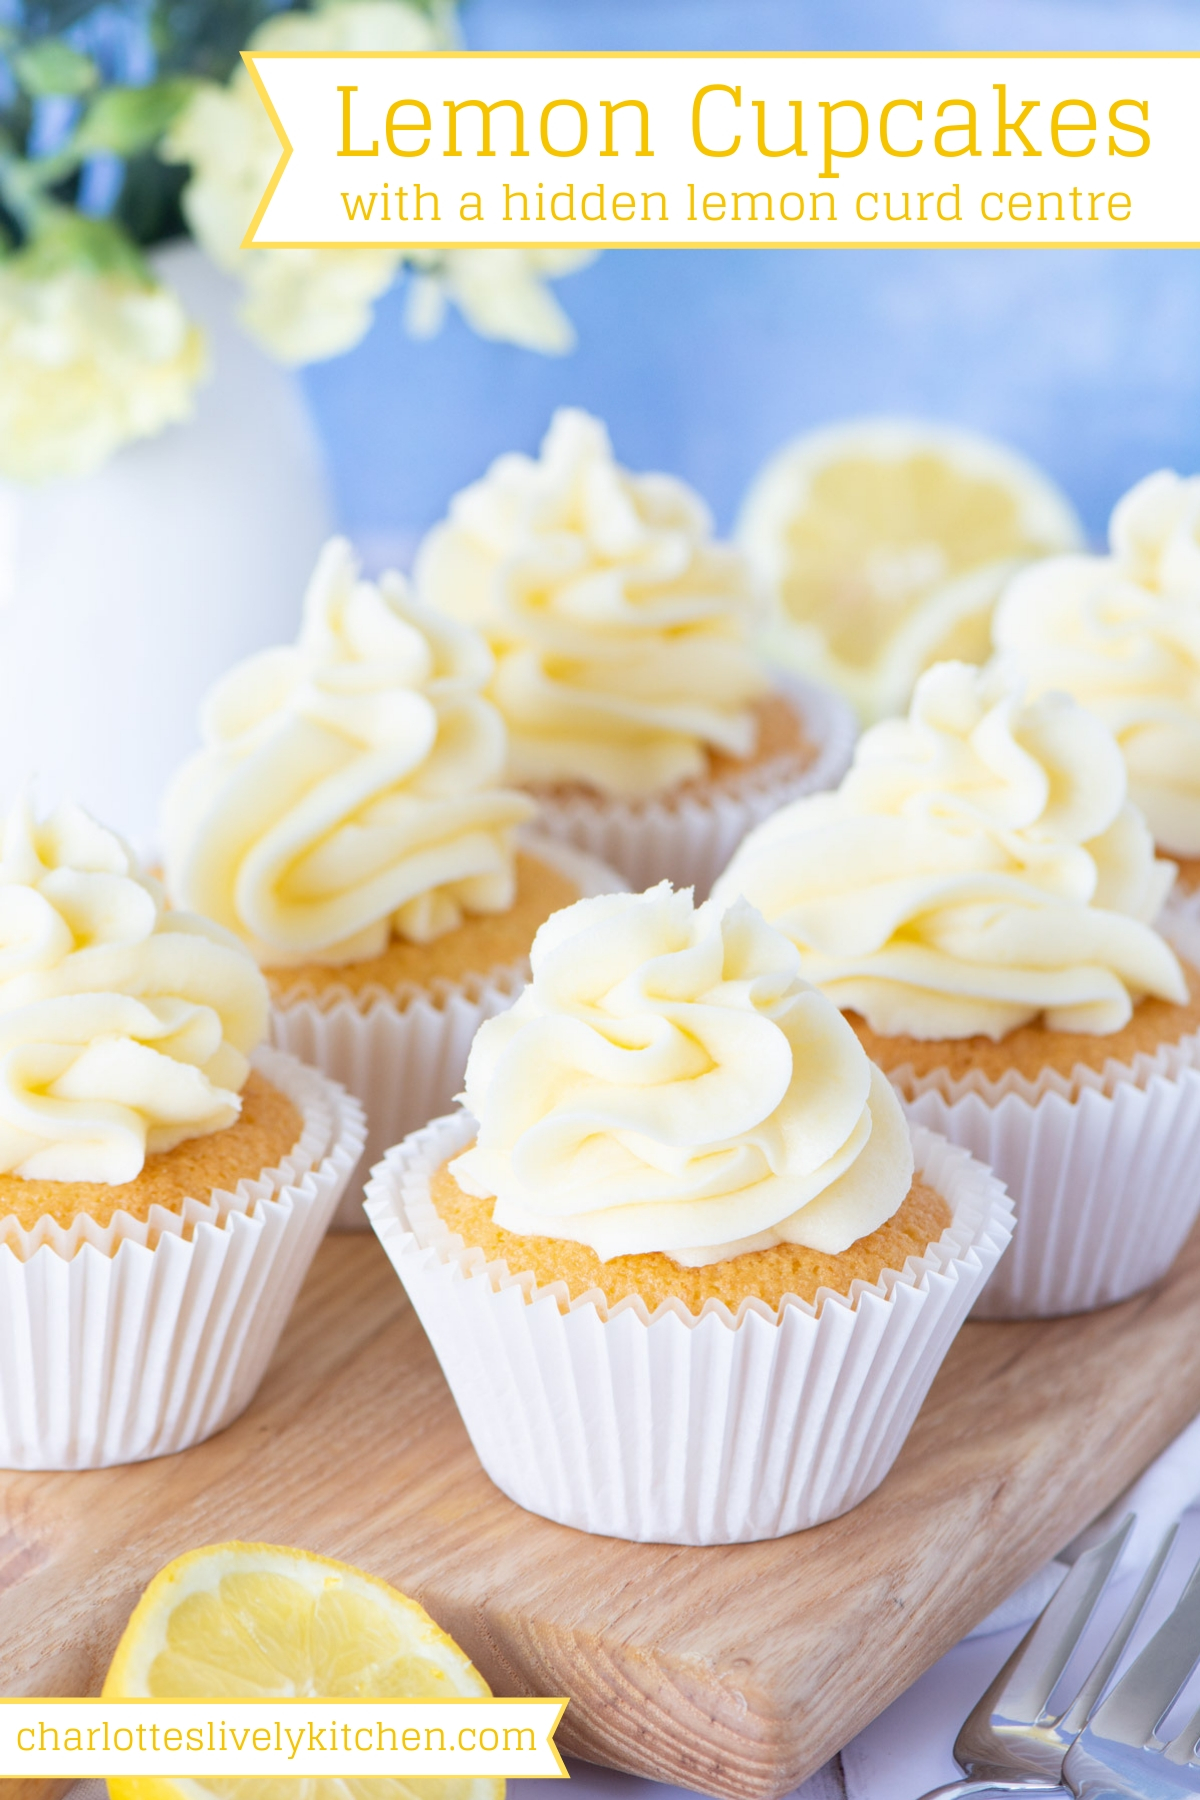 Lemon Cupcakes - Moist lemon cupcakes topped with smooth lemon buttercream and filled with a hidden lemon curd centre.